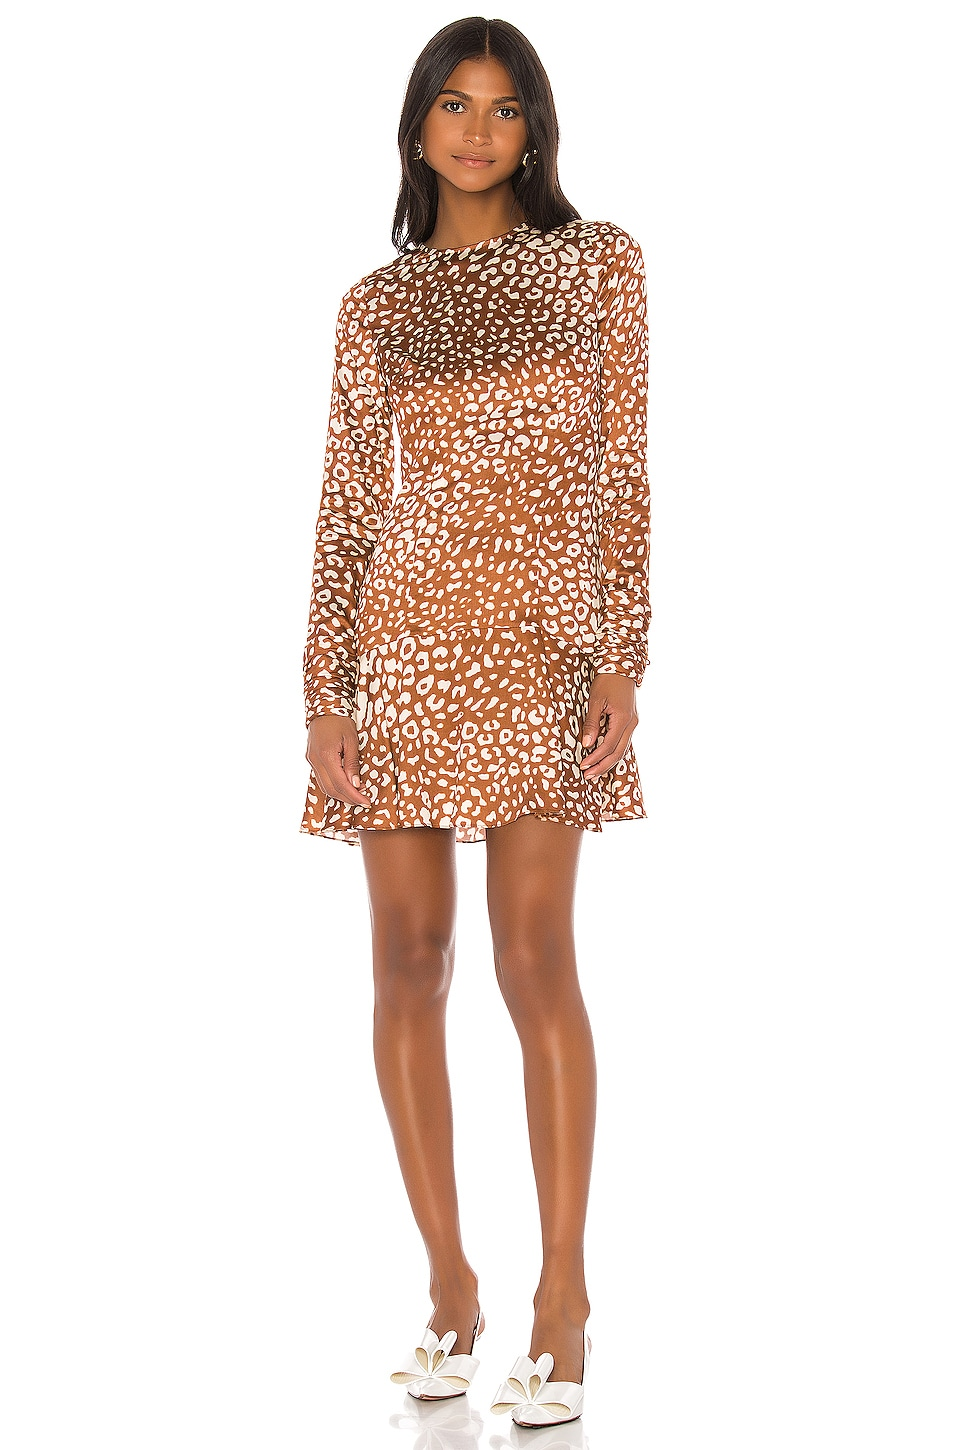 Alexis Madhu Dress in Sienna Leopard